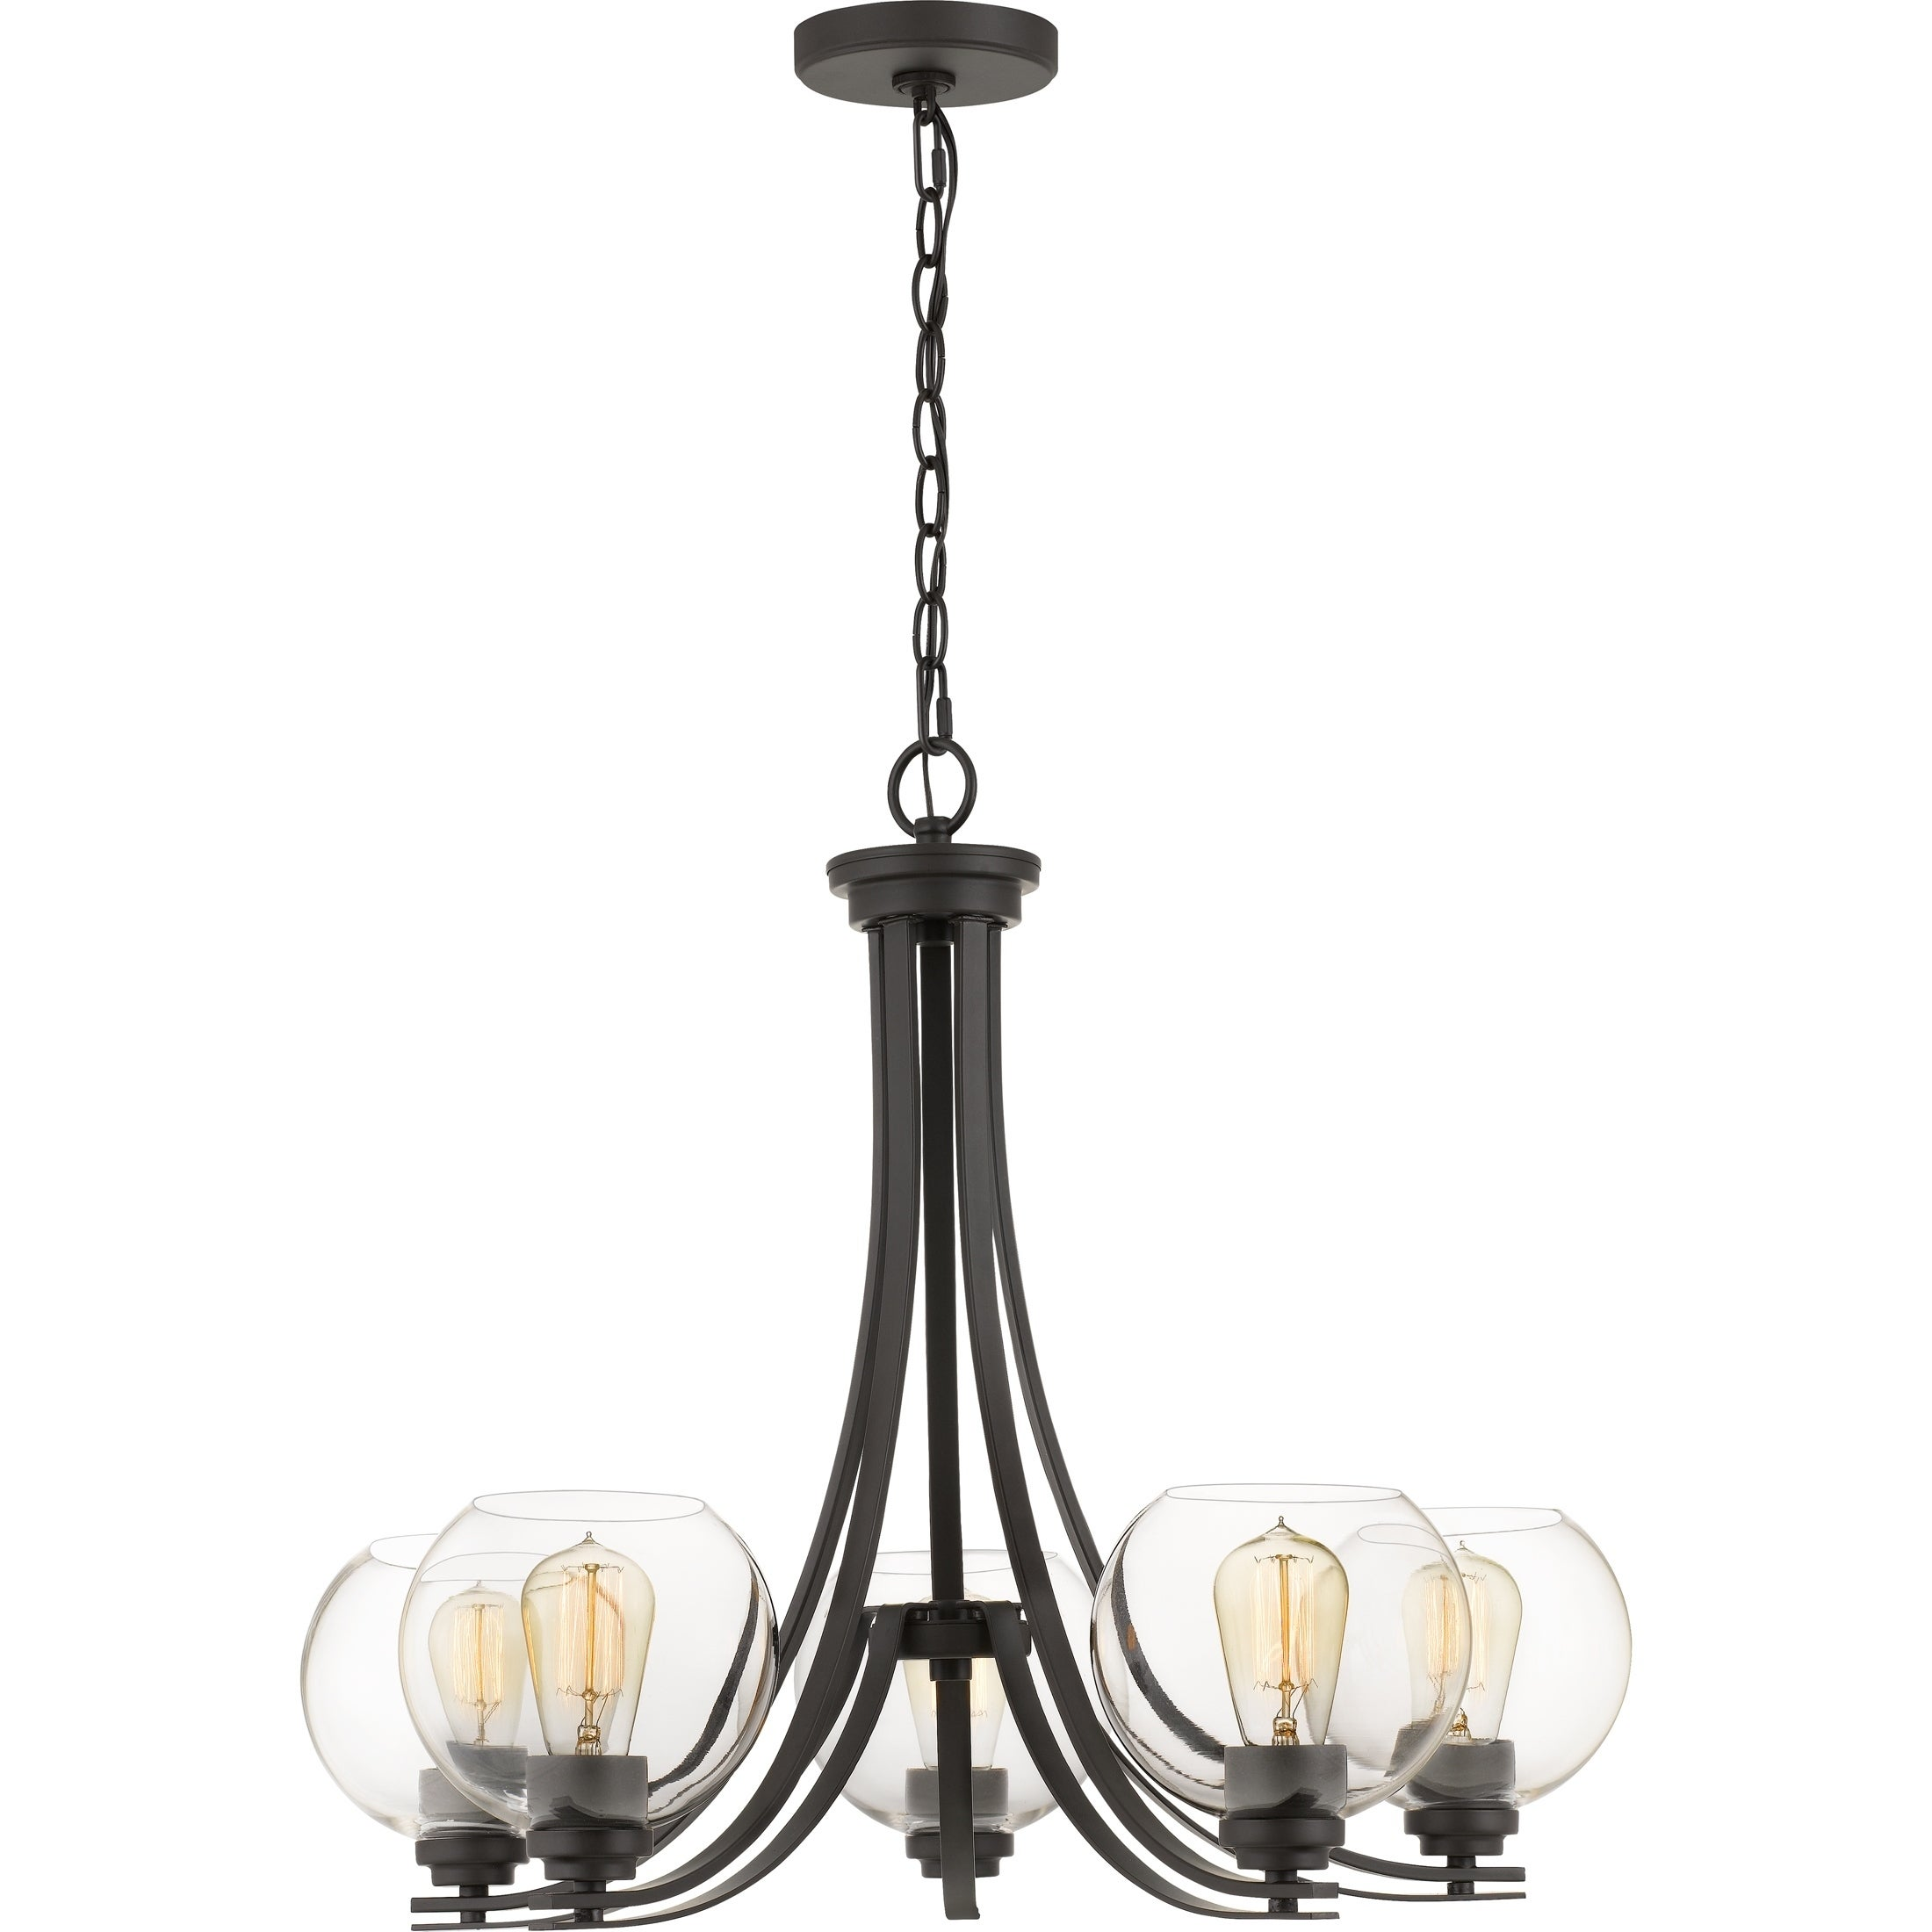 Quoizel Gallant Clear Glass 5-light 26.5-inch Wide Chandelier